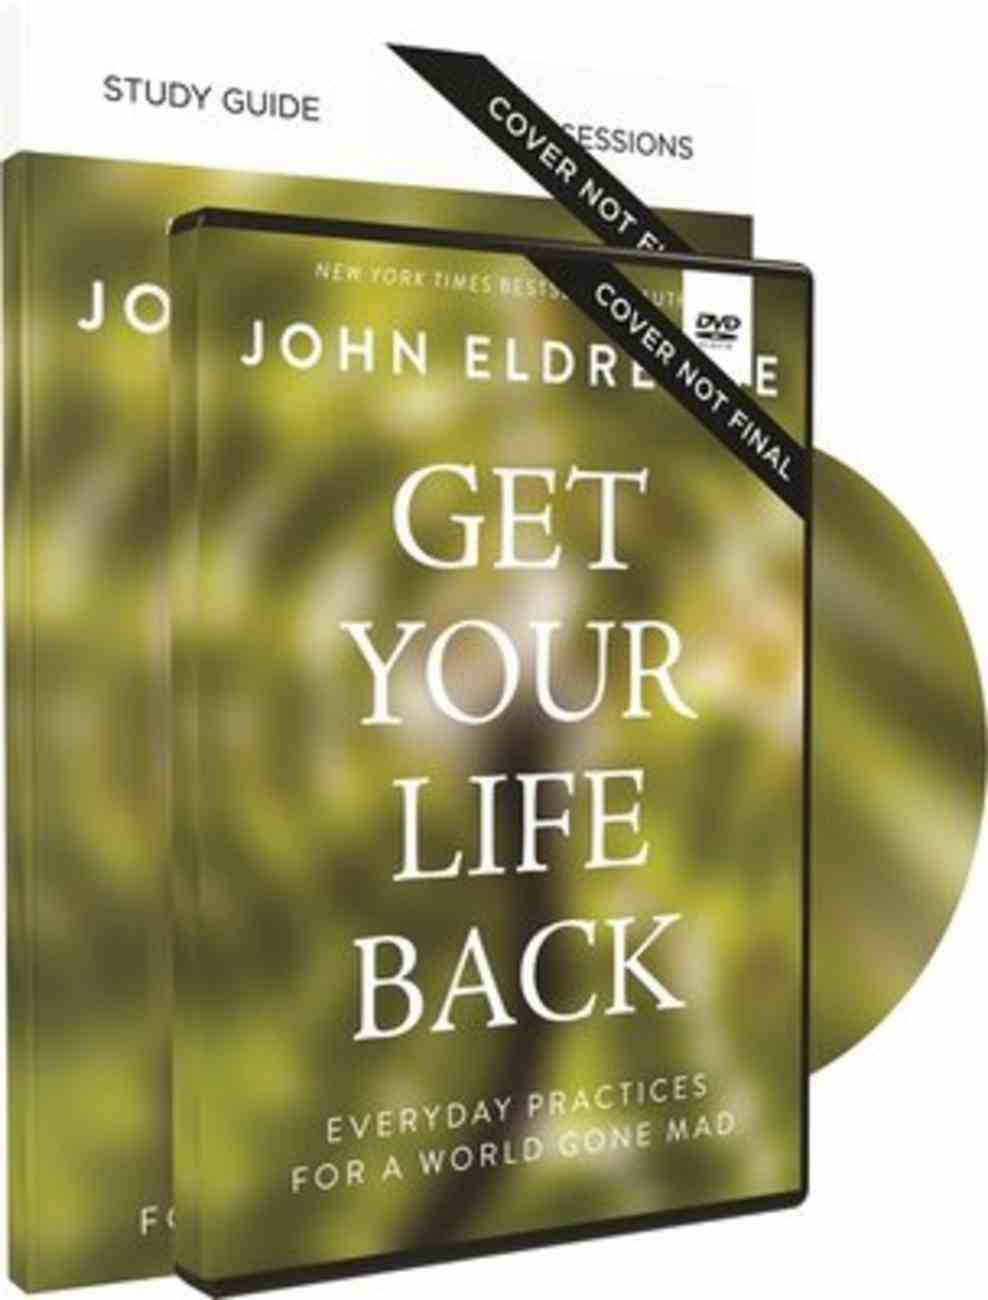 Get Your Life Back: Everday Practices For a World Gone Mad (Study Guide And Dvd) Pack